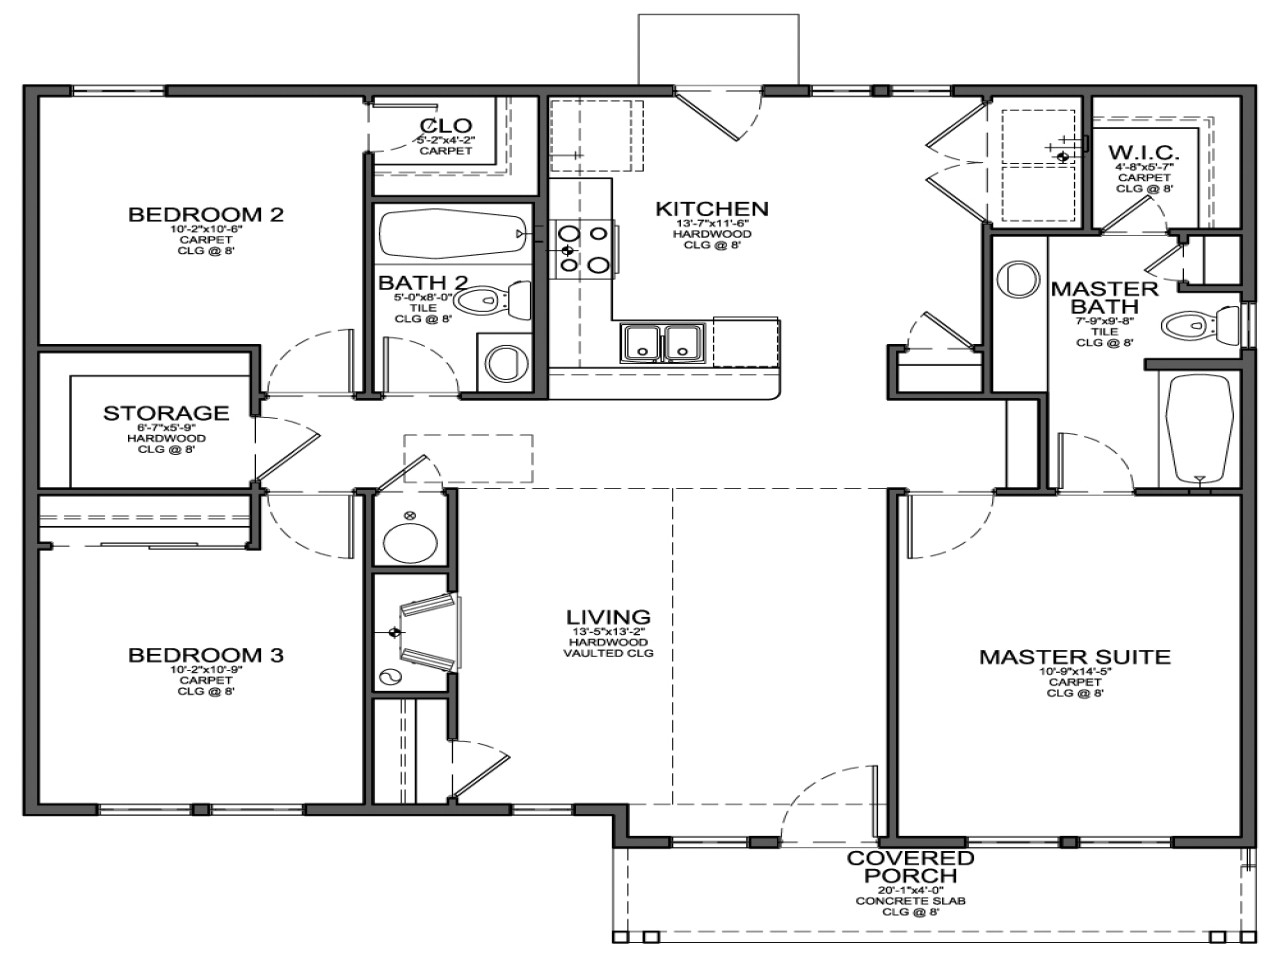 8c9206d13ffee26a 3 Bedroom House Layouts Small 3 Bedroom House Floor Plans